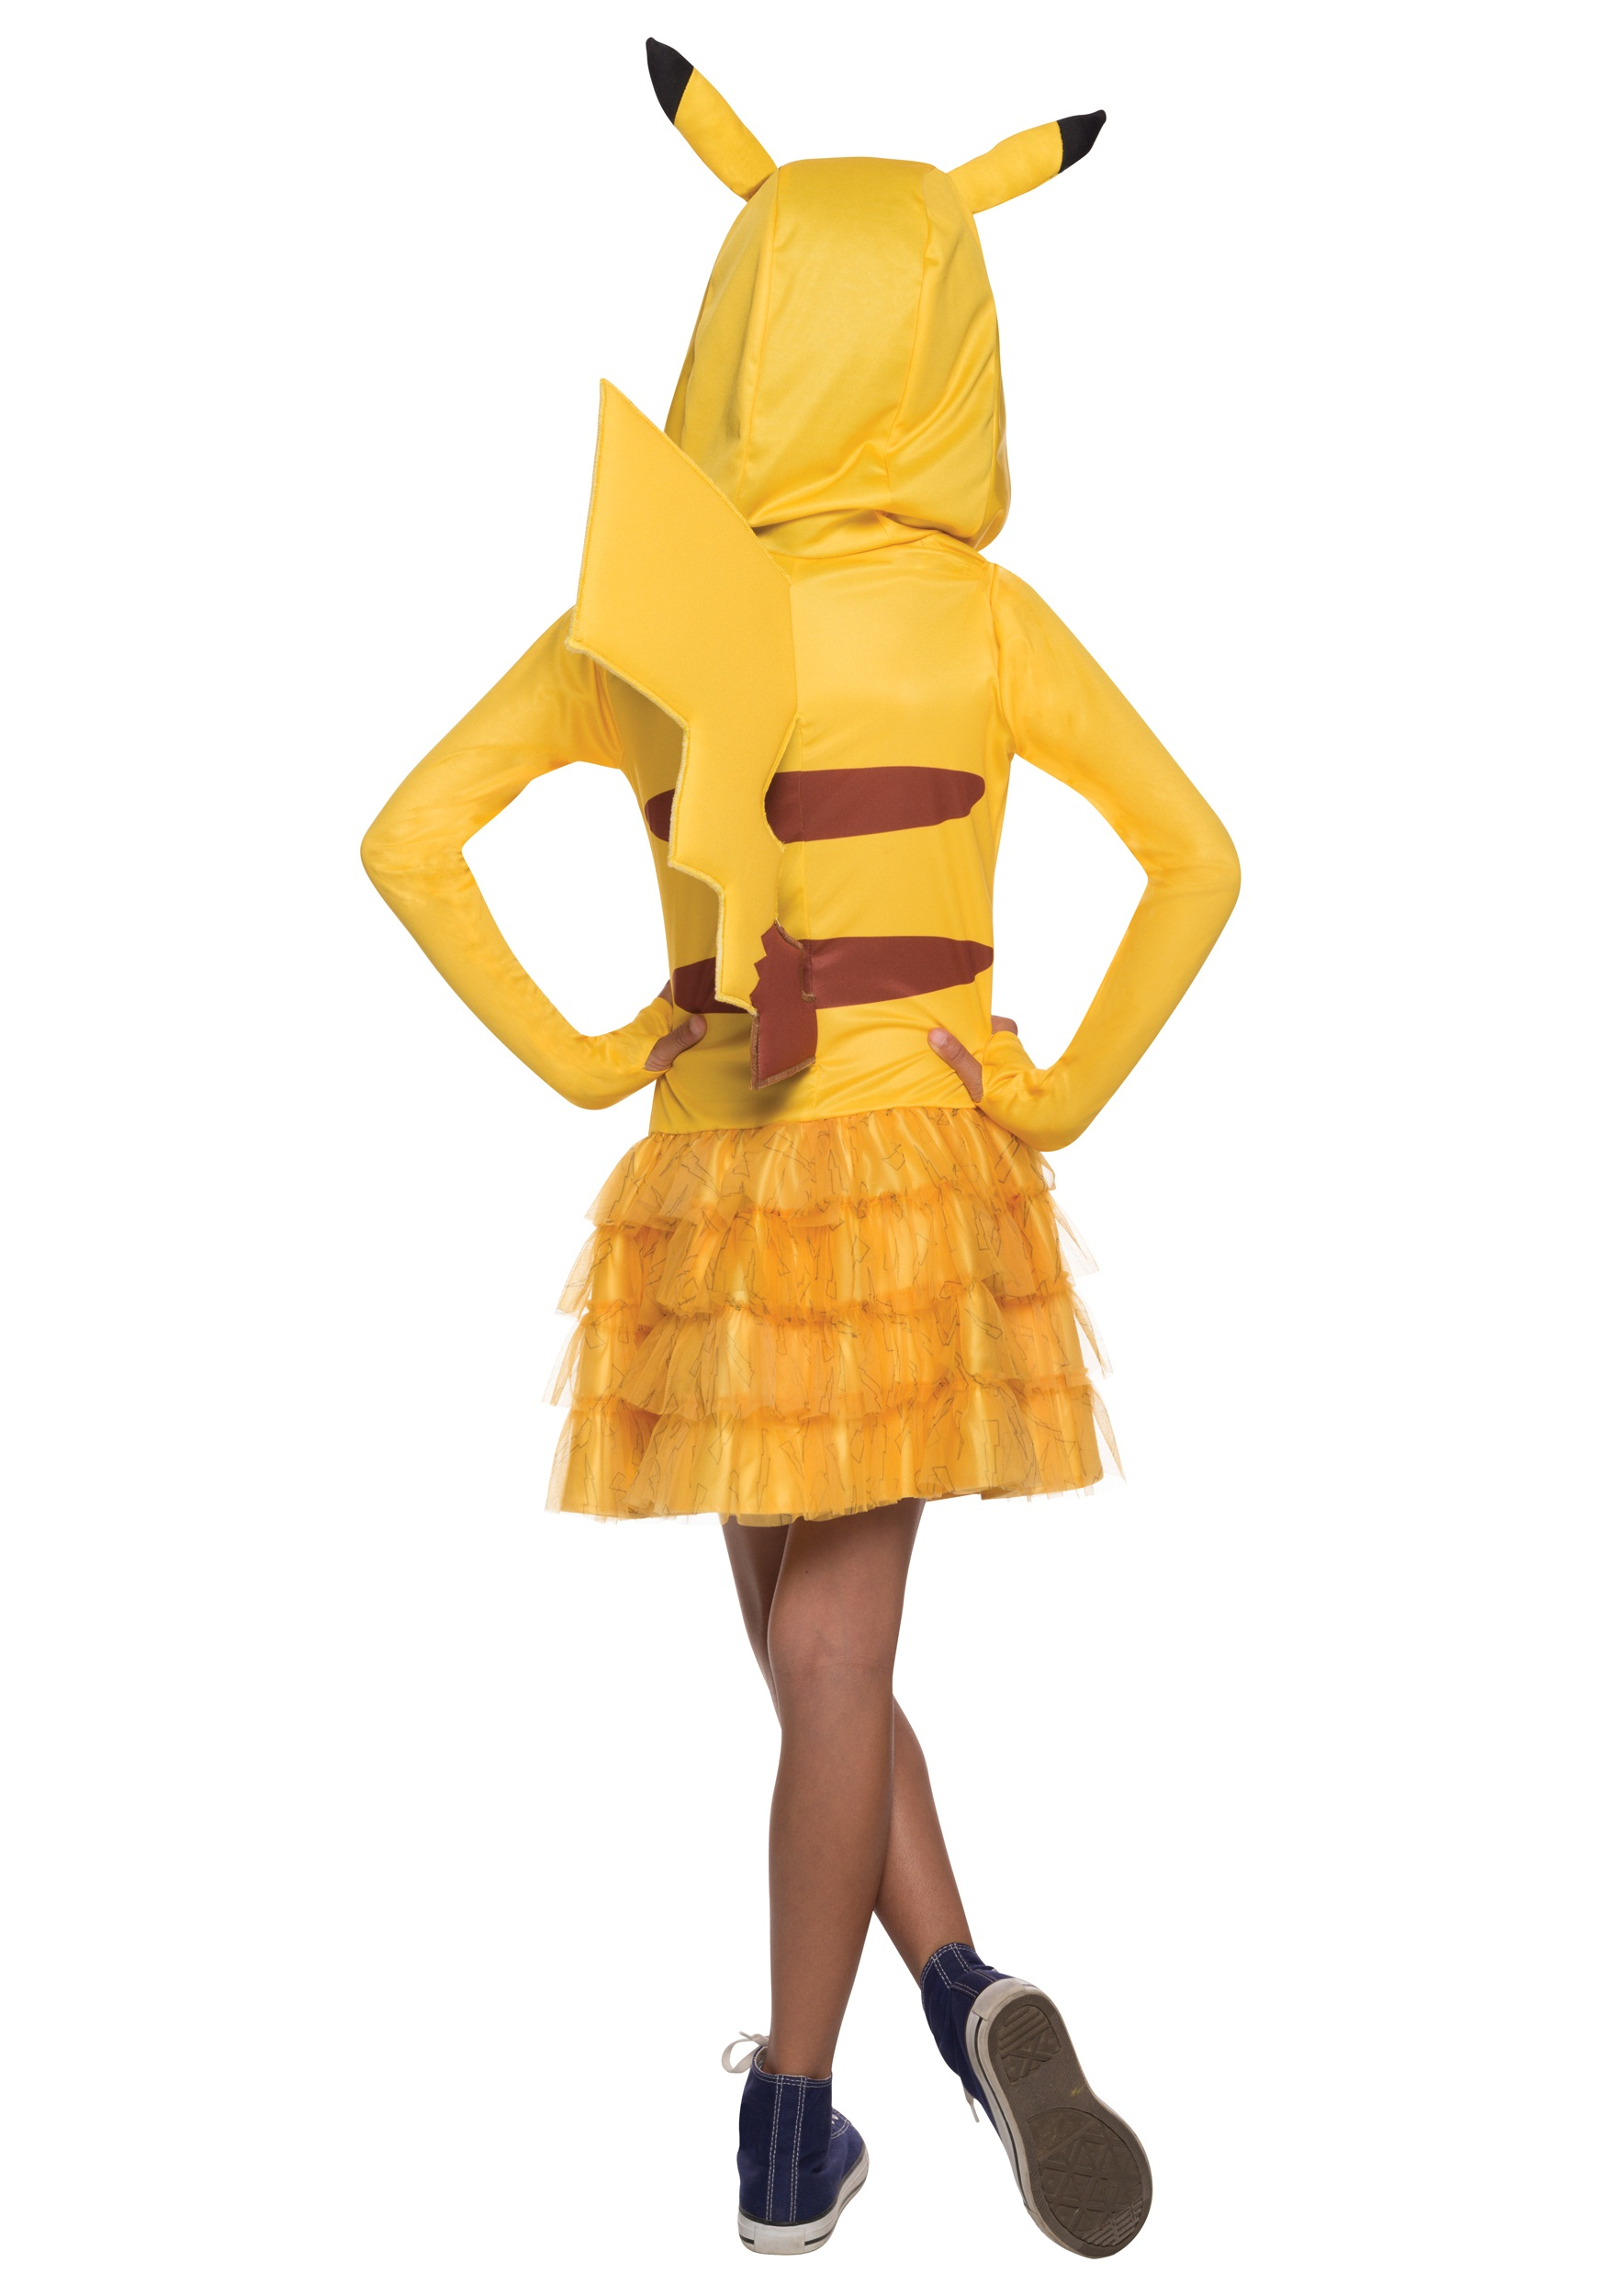 Girls Pikachu Hoodie Dress Girls Pikachu Hoodie Dress logo. Buy New$39.99